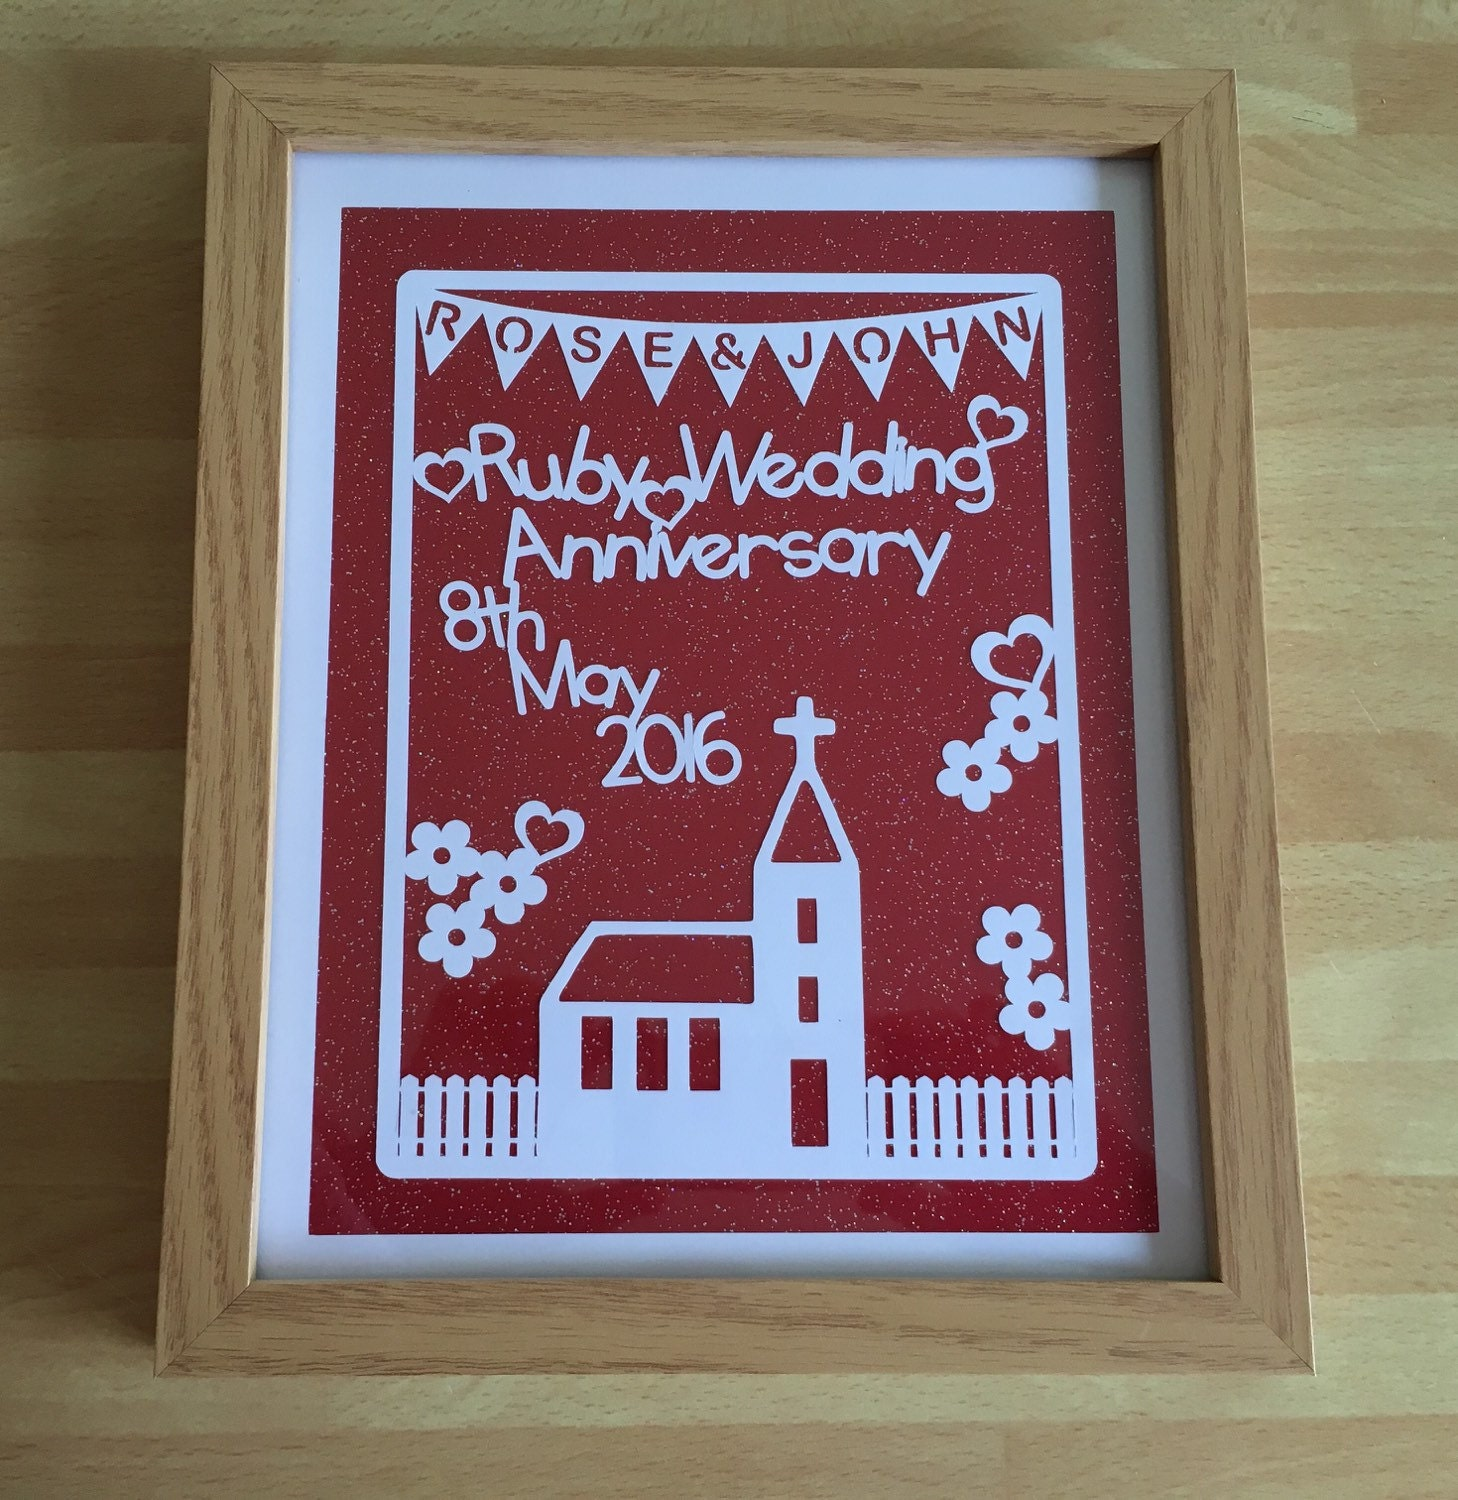 Personalized Ruby Wedding Anniversary Paper Cut Gift Framed